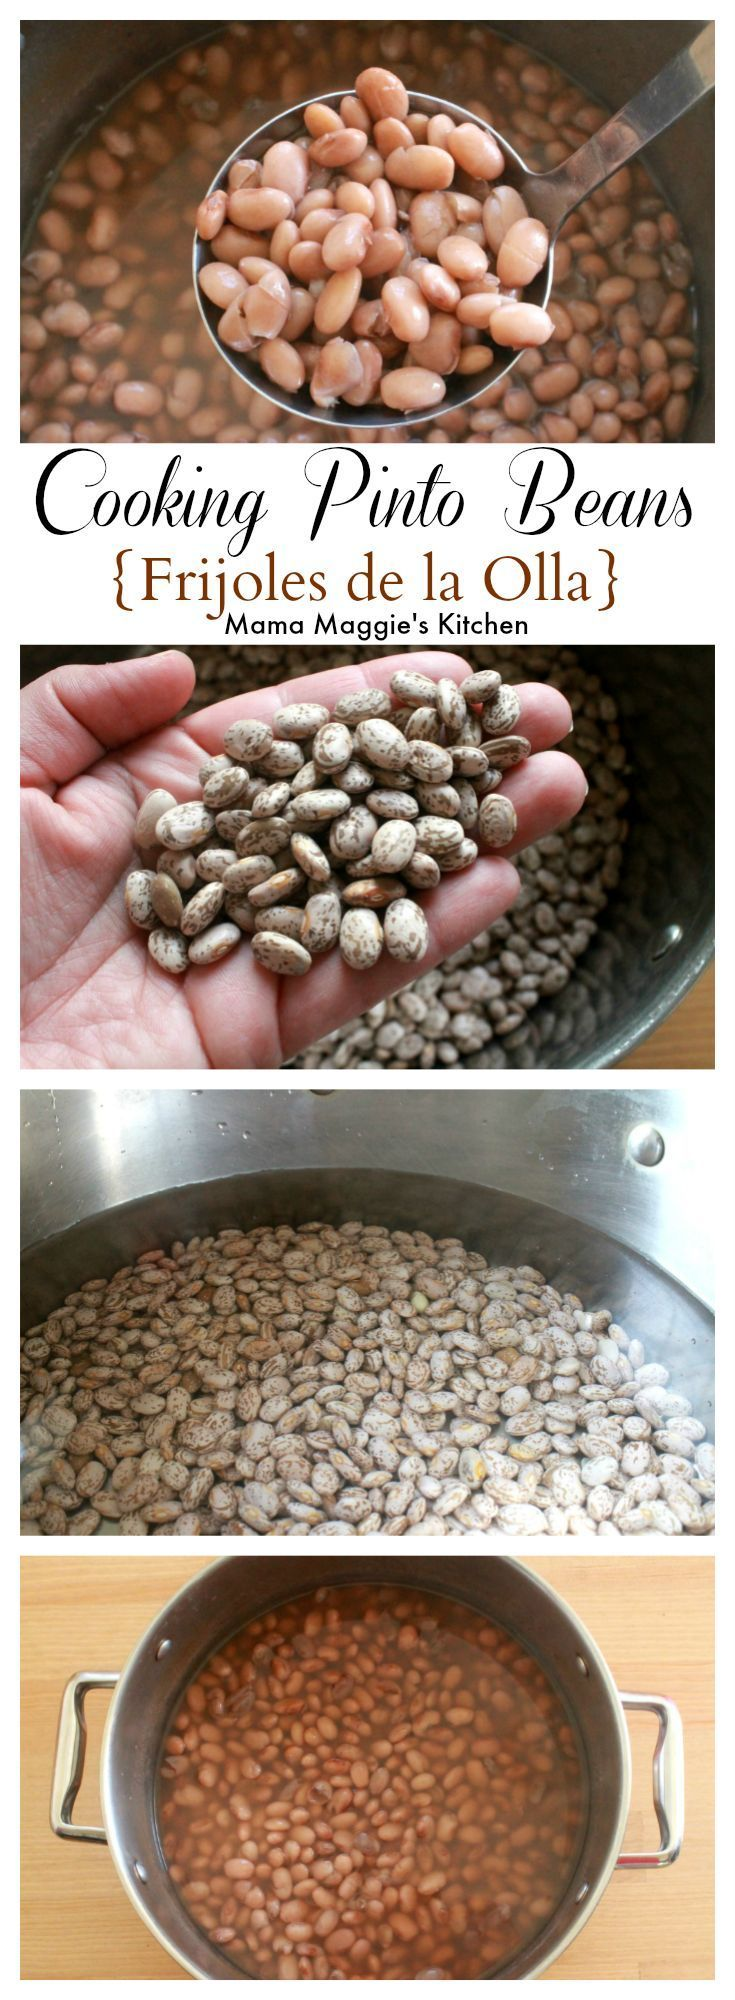 Cooking Pinto Beans, or Frijoles de la Olla, is easy. Only a few ingredients, but it does involve time. You can't rush this magical bean. It's worth the wait for this classic side dish in Mexican cuisine. By Mama Maggie's Kitchen